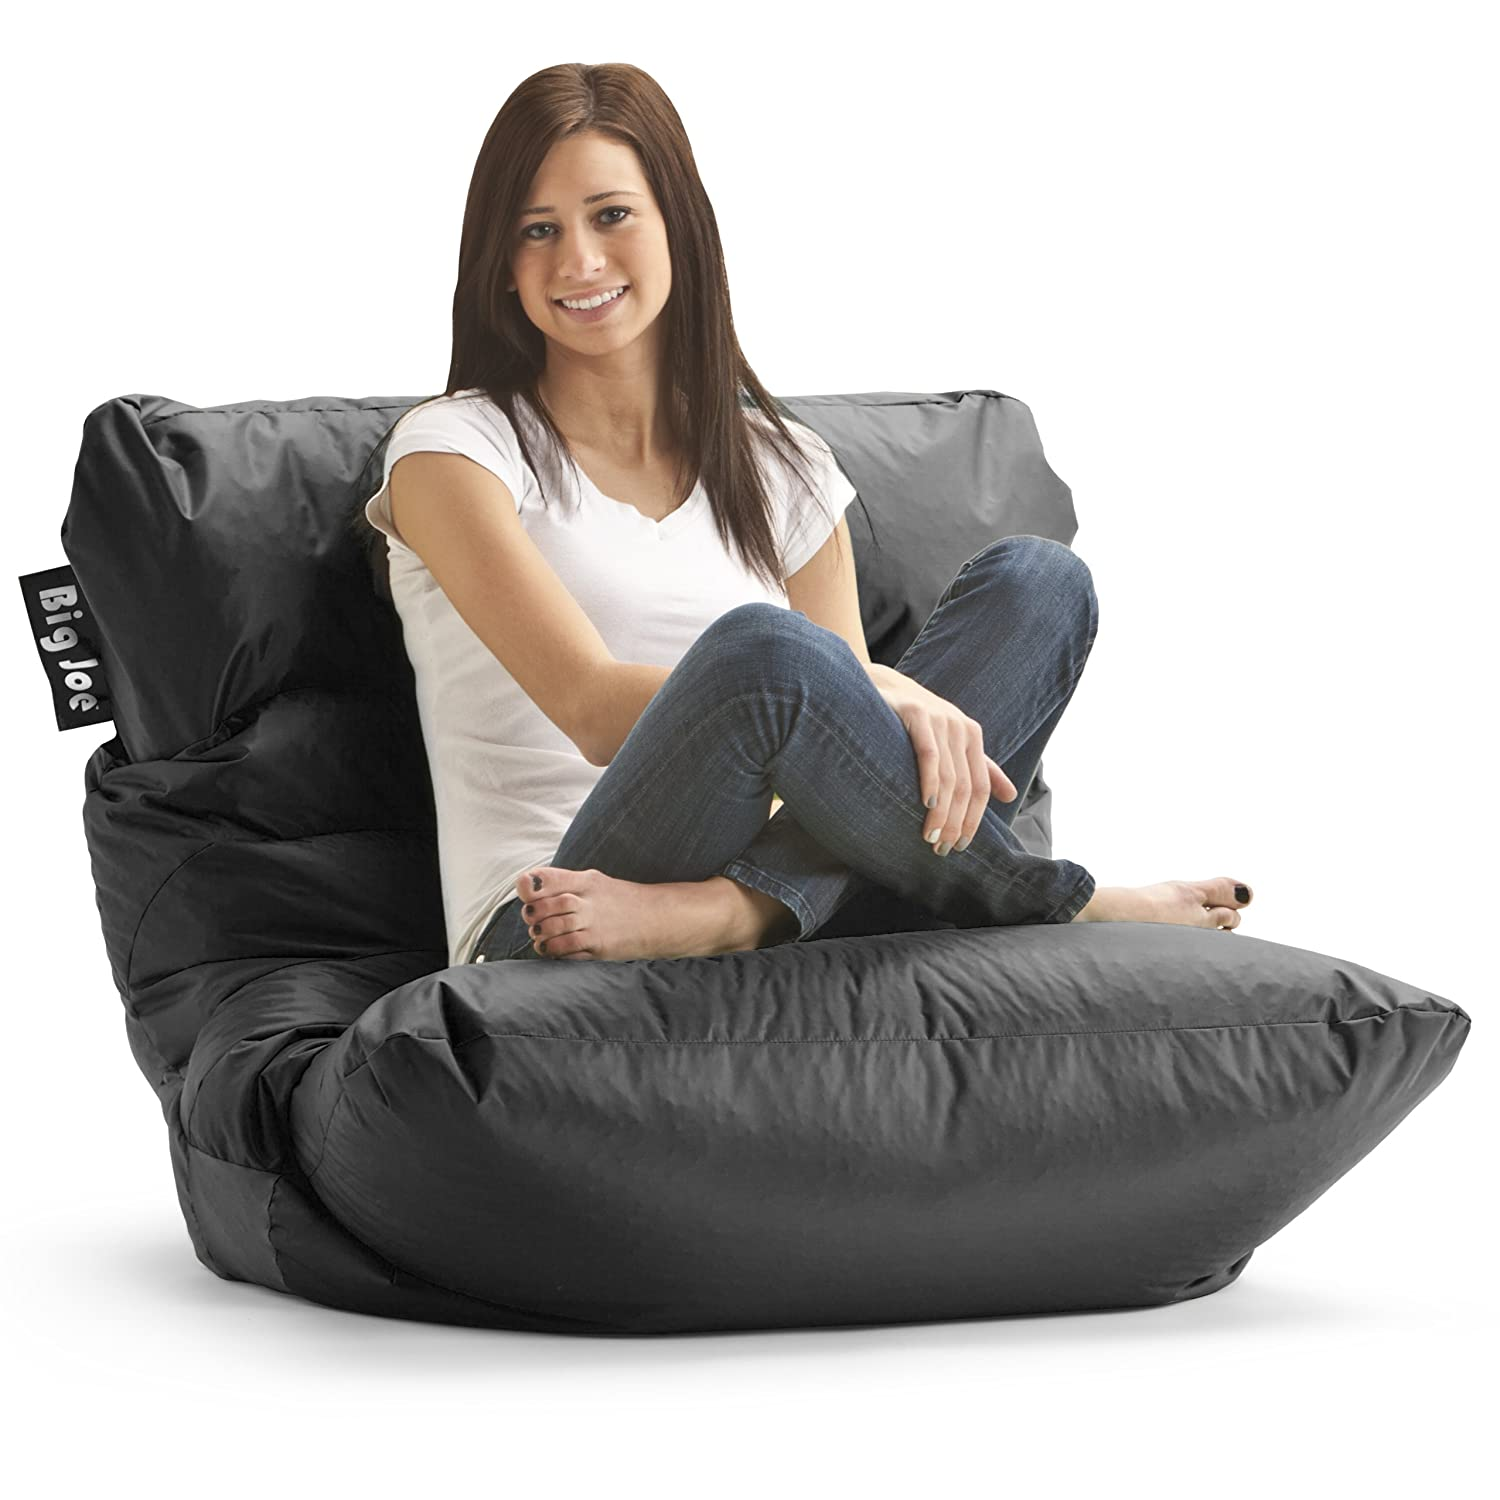 Foam Chairs That Turn Into Beds likewise Bean Bag Bed With Blanket And Pillow also Dream Teen Bedrooms as well Ikea Bean Bag Sofa further 26354635. on foam bean bag chair bed